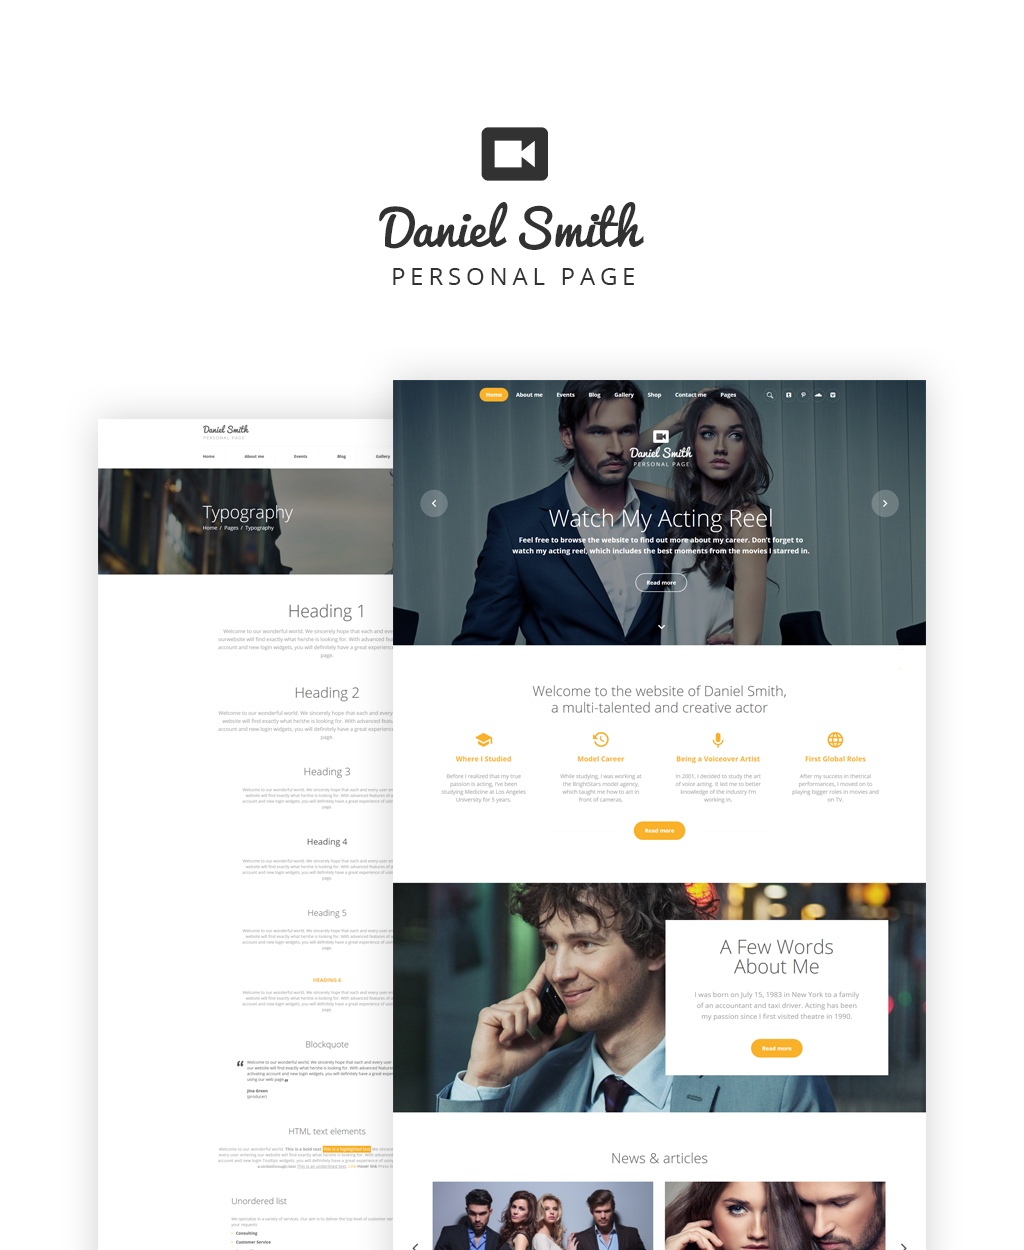 Daniel Smith - Personal Page Responsive Multipage Website Template - screenshot